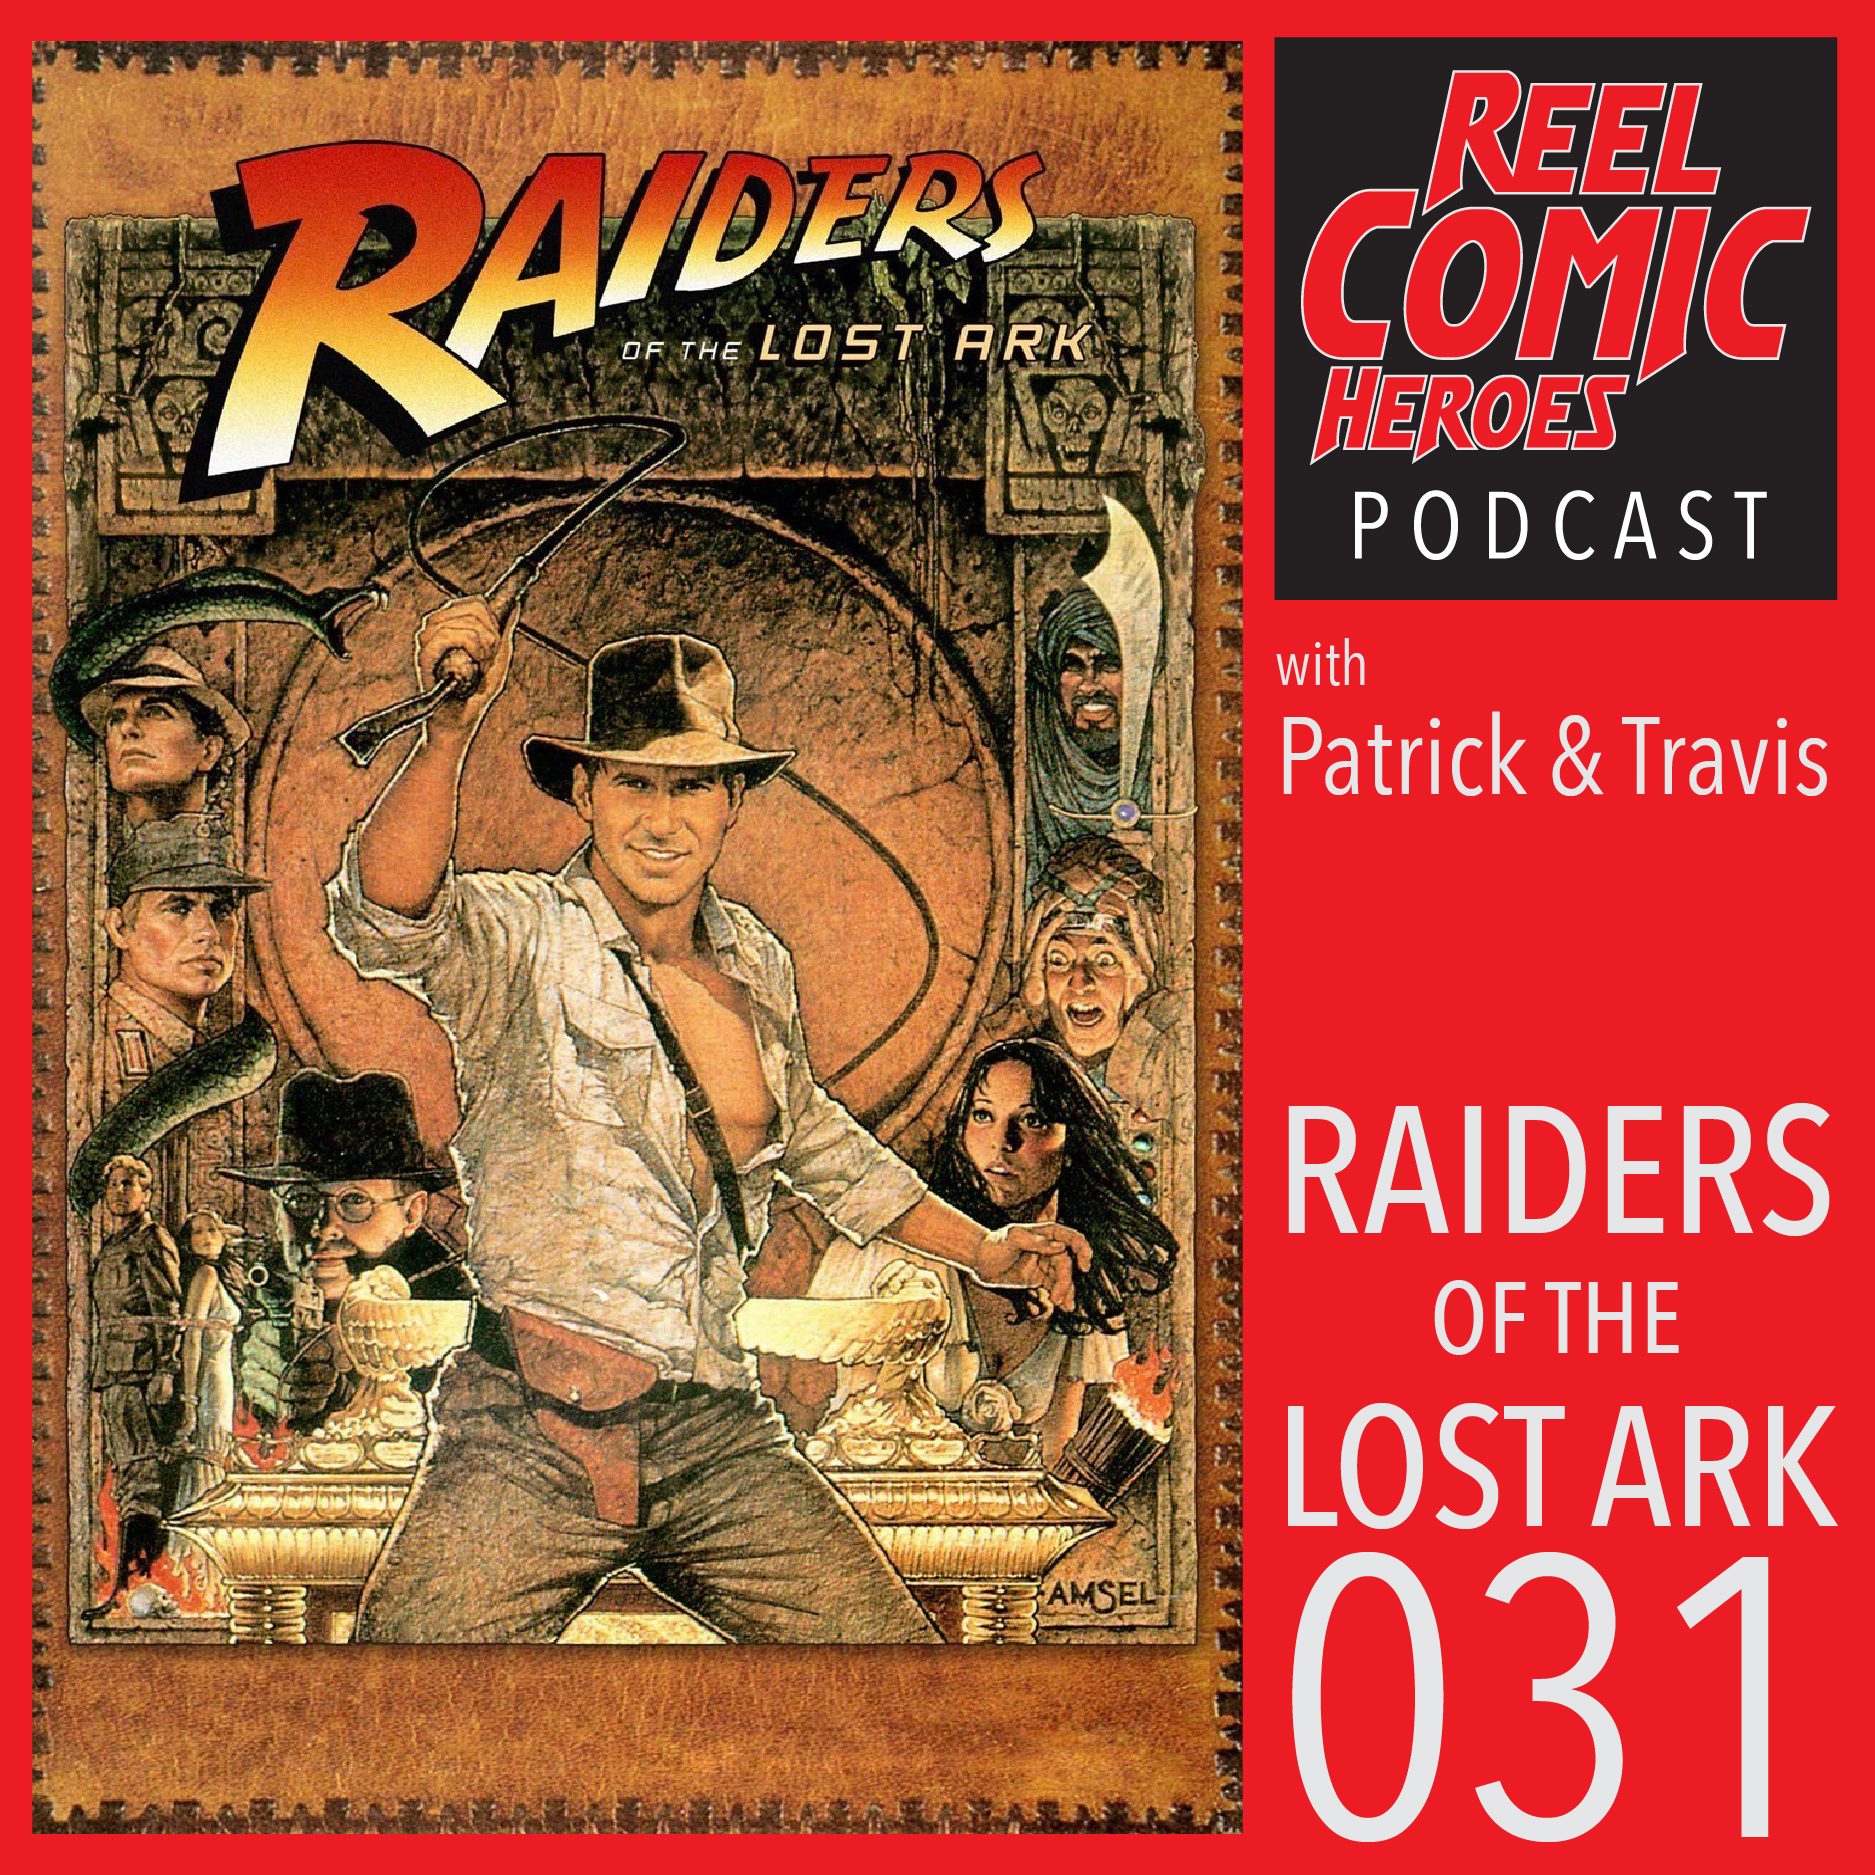 Artwork for Reel Comic Heroes 031 - Raiders of the Lost Ark with No Time For Heroics